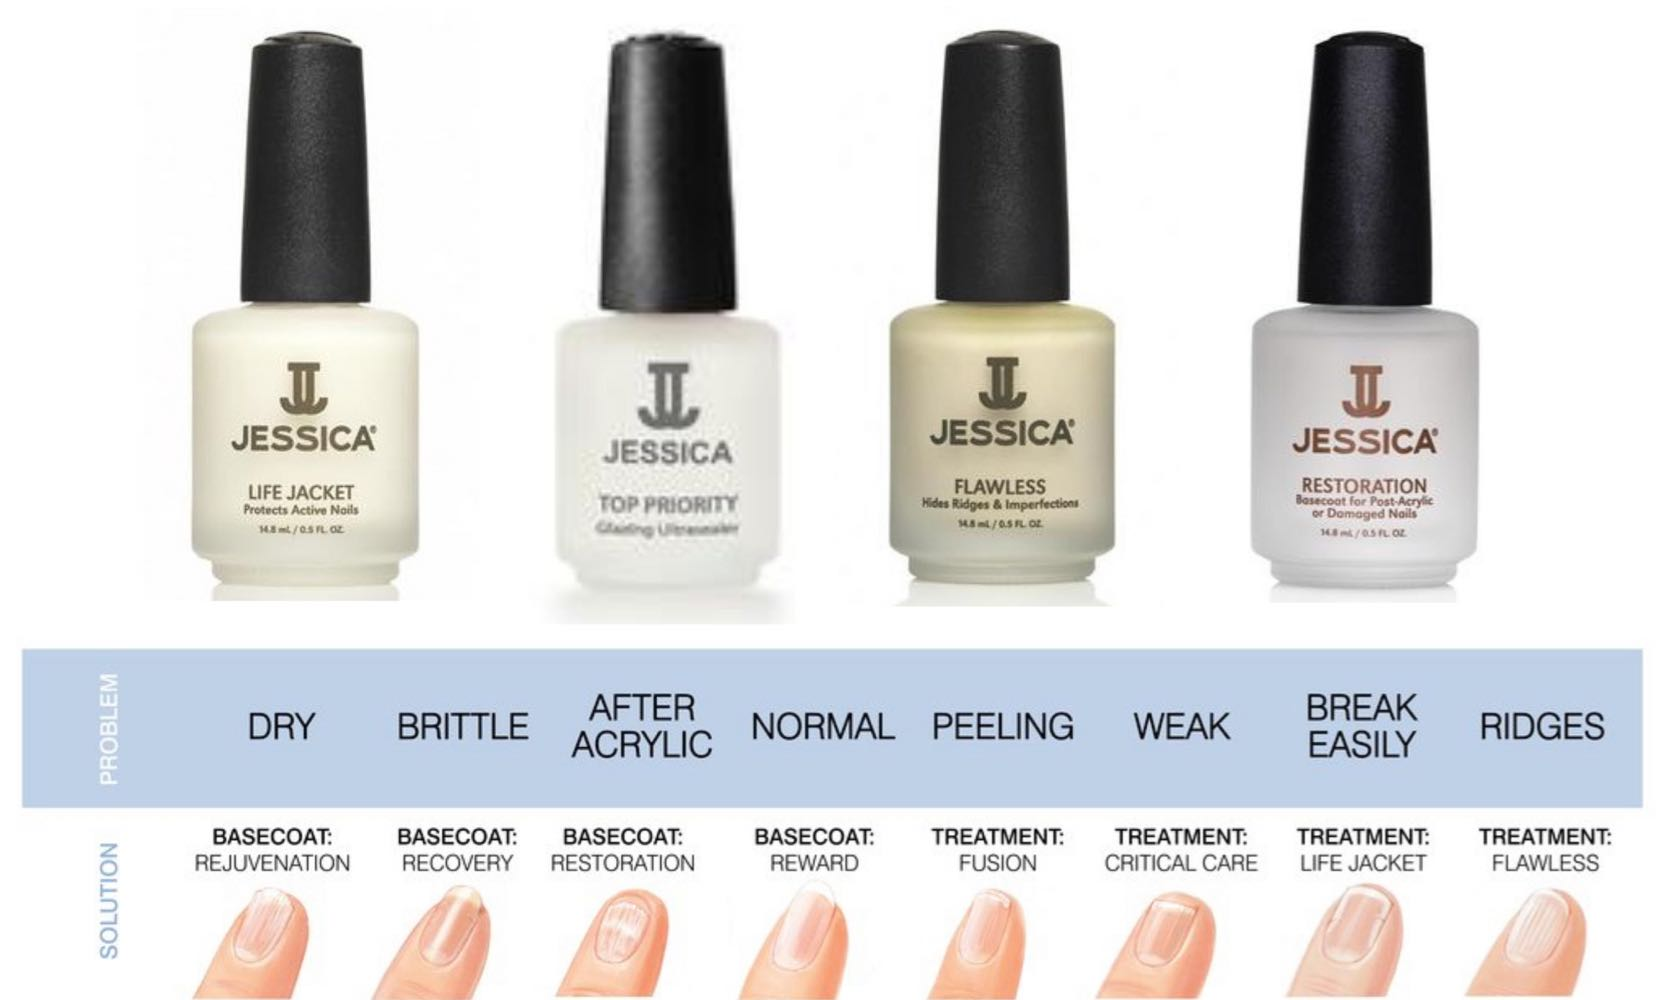 Jessica Nibble No More 14.8ml | £12.50 | FREE Delivery over £50